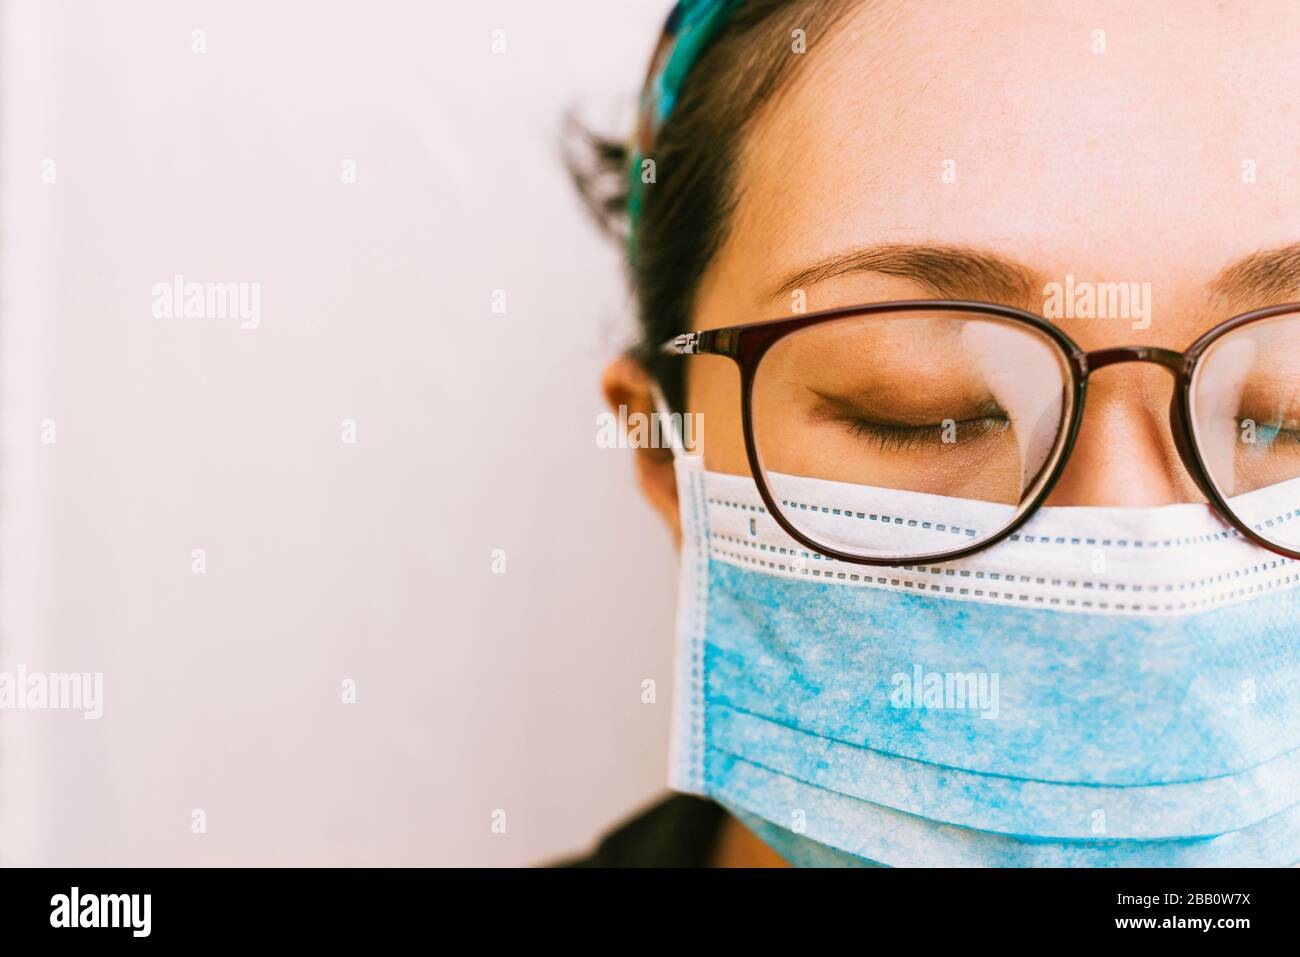 coronavirus theme. Asian woman with glasses wearing a mask to protect herself from getting infected Stock Photo